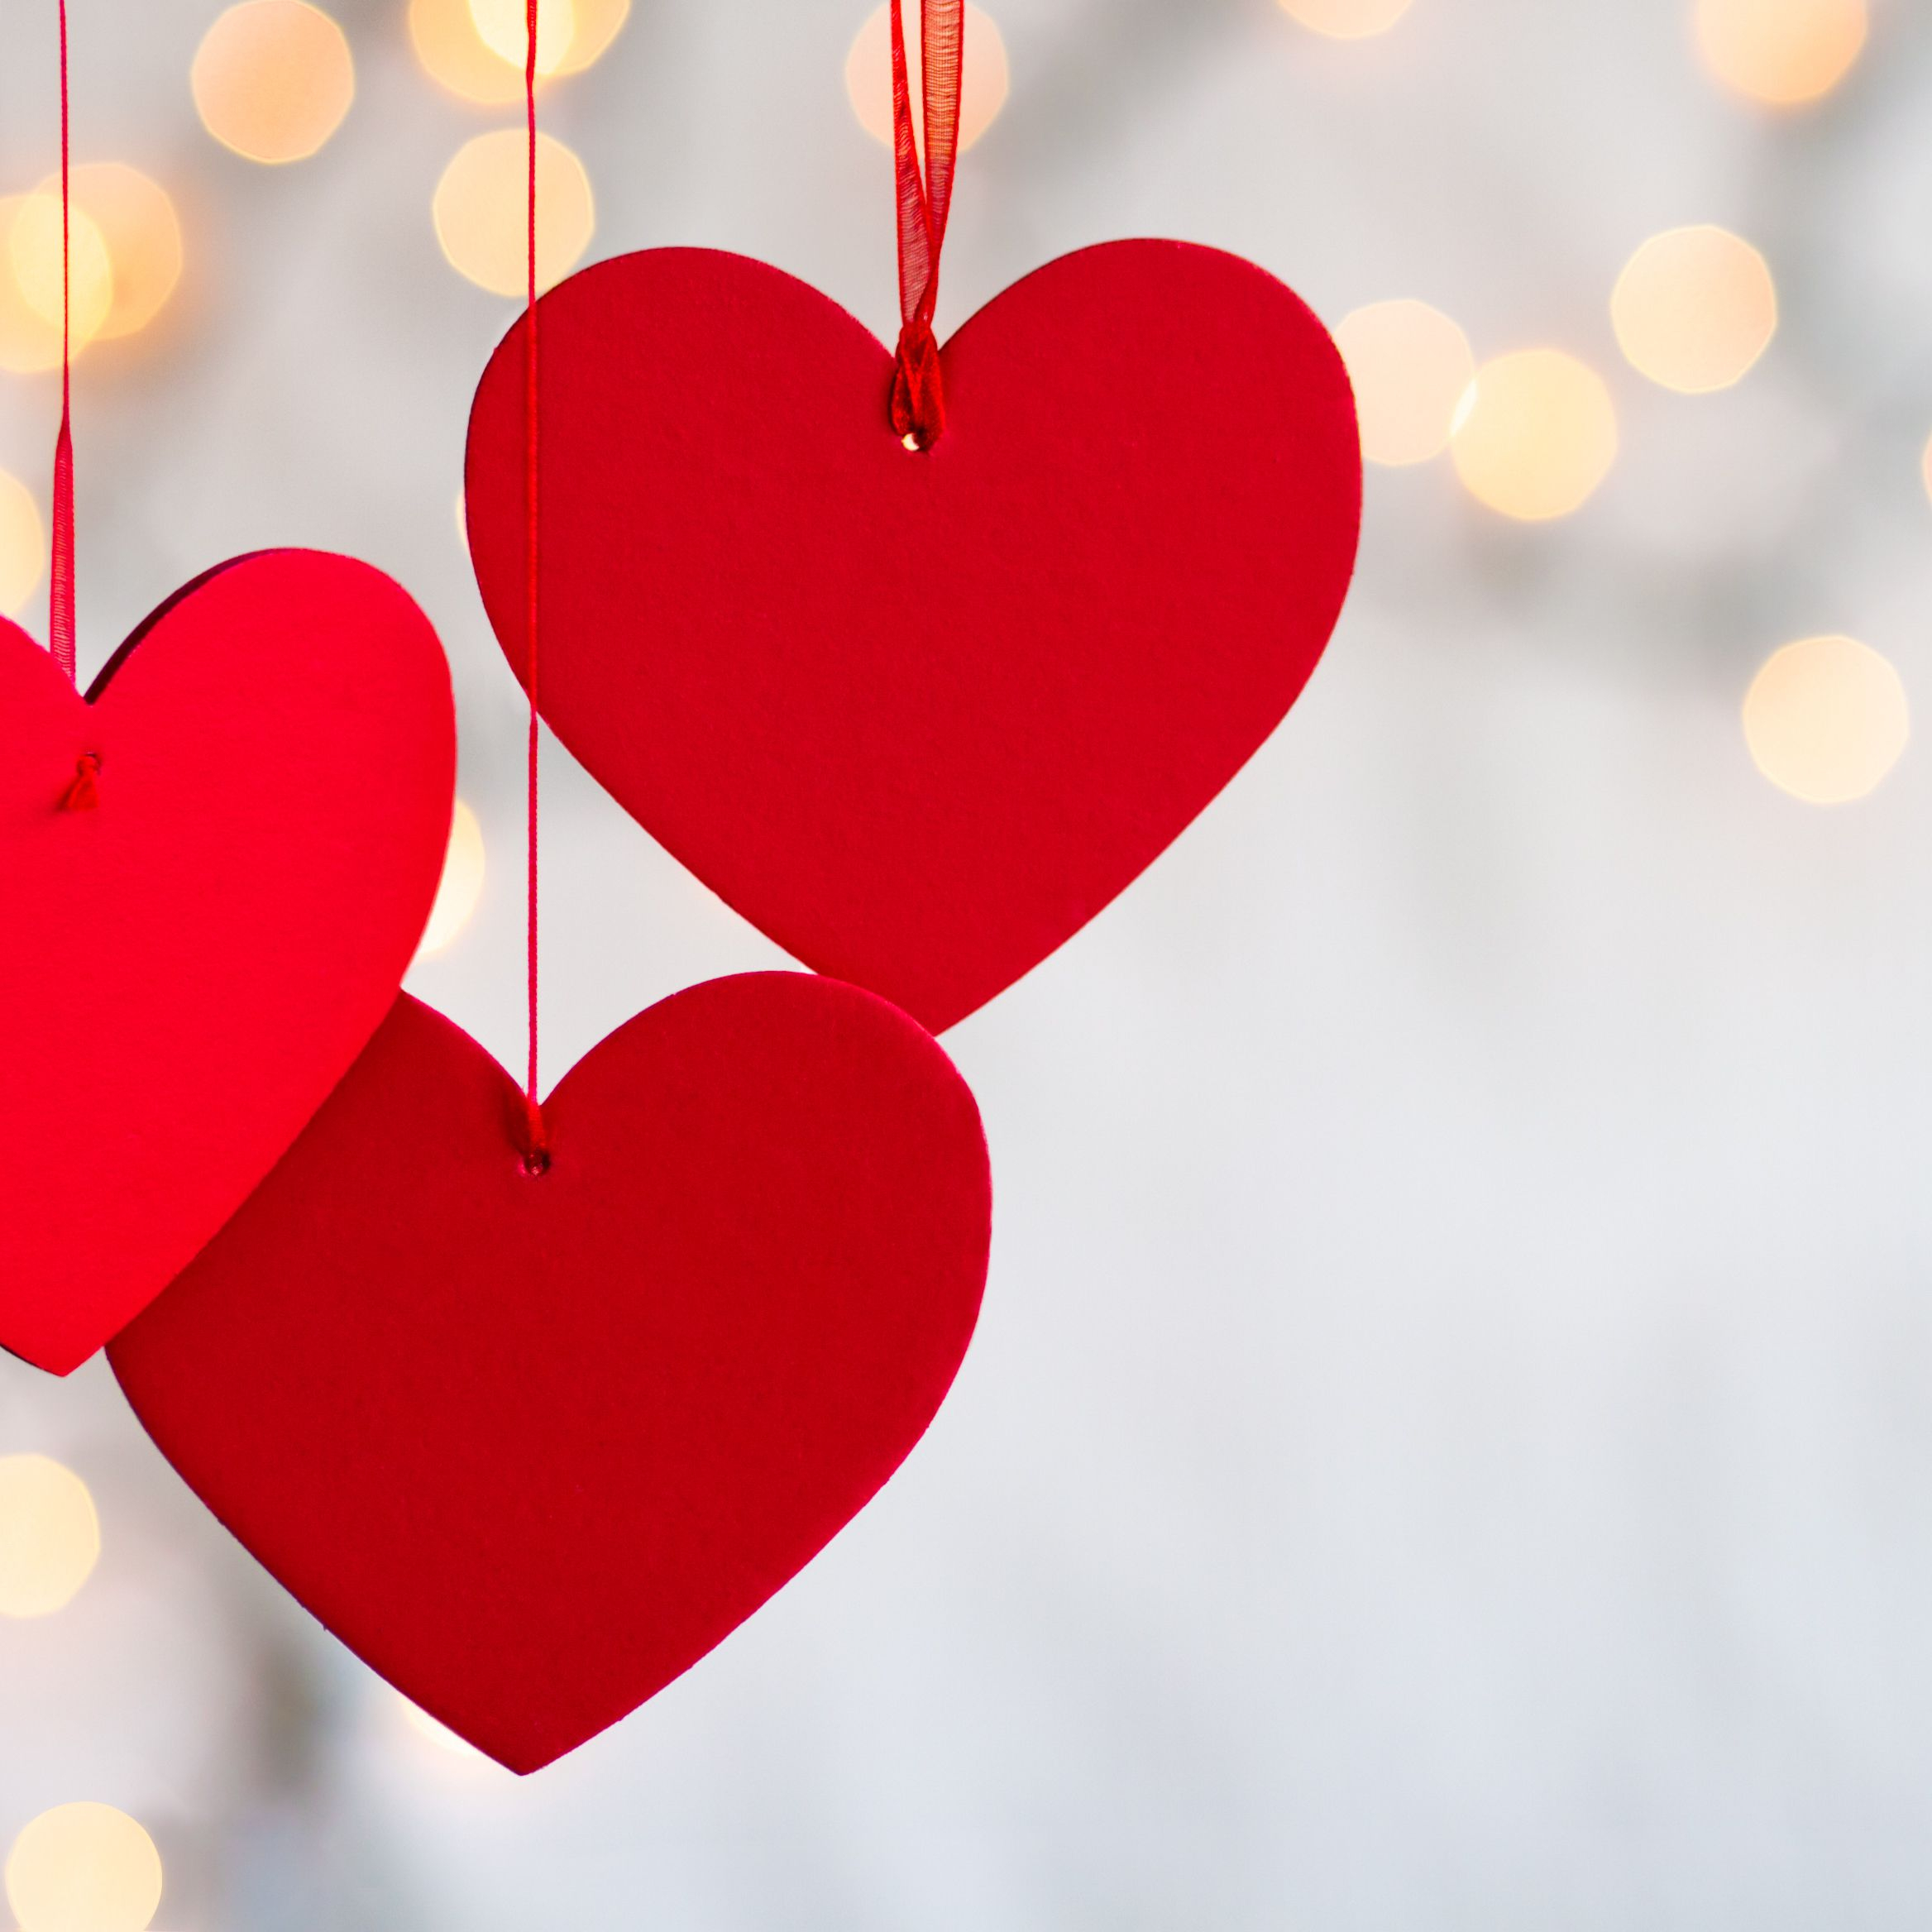 three hanging red hearts on defocused light background 5a32b f a